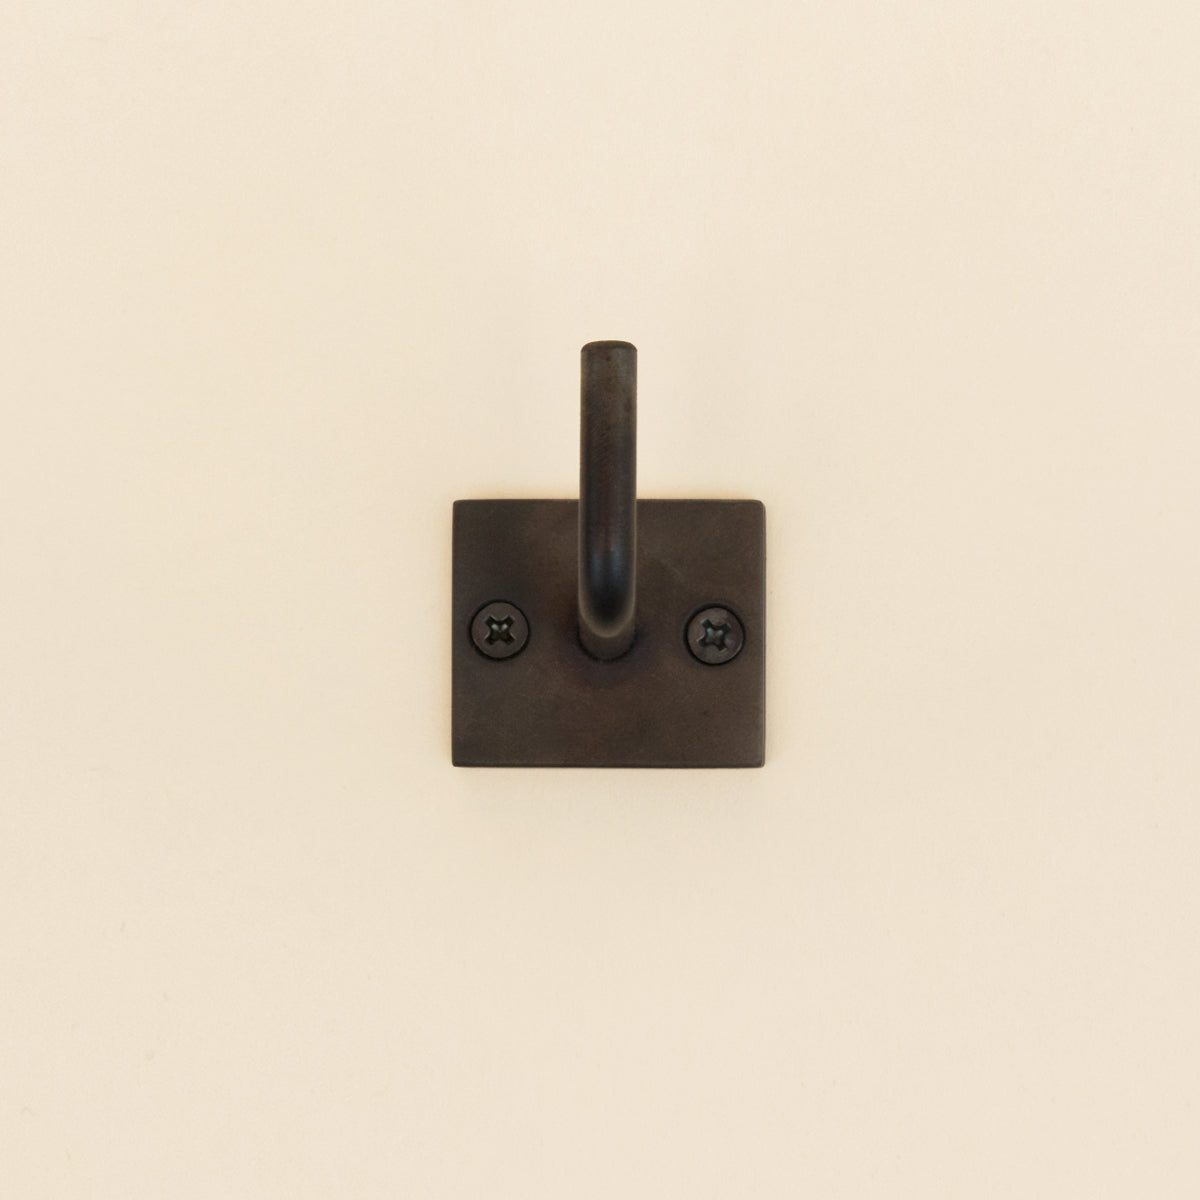 Iron Wall Hook - Square